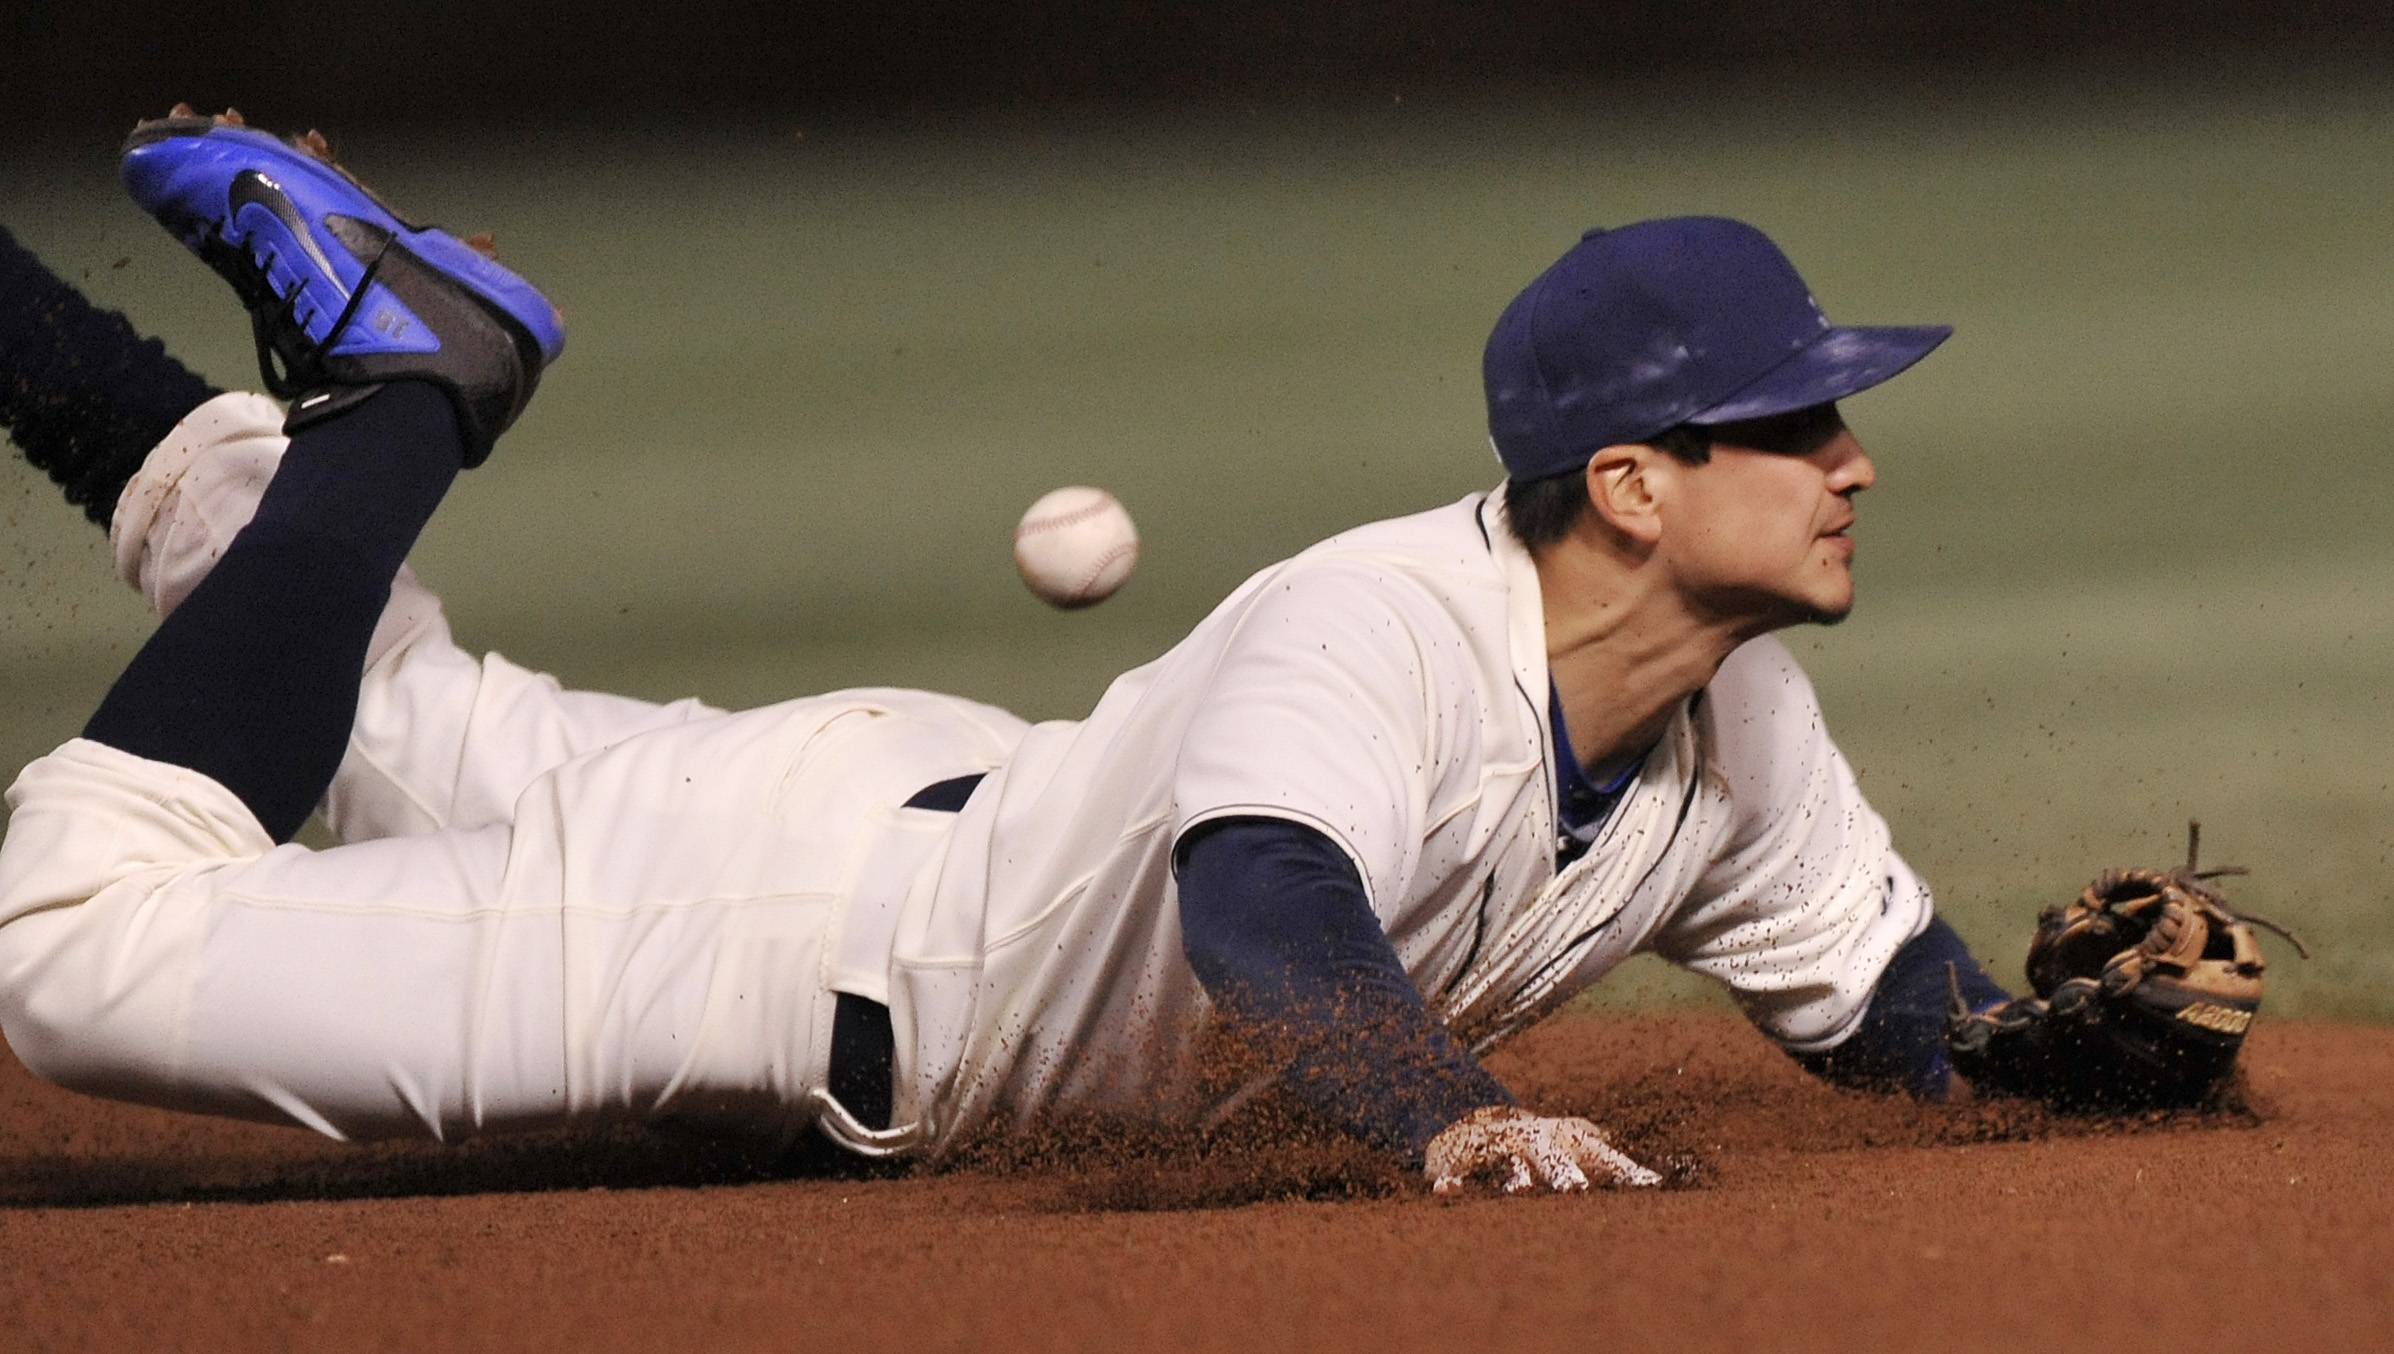 Cubs second baseman Darwin Barney dives but can't corral a single hit by the Cardinals' Matt Carpenter in the sixth inning Sunday night at Wrigley Field.